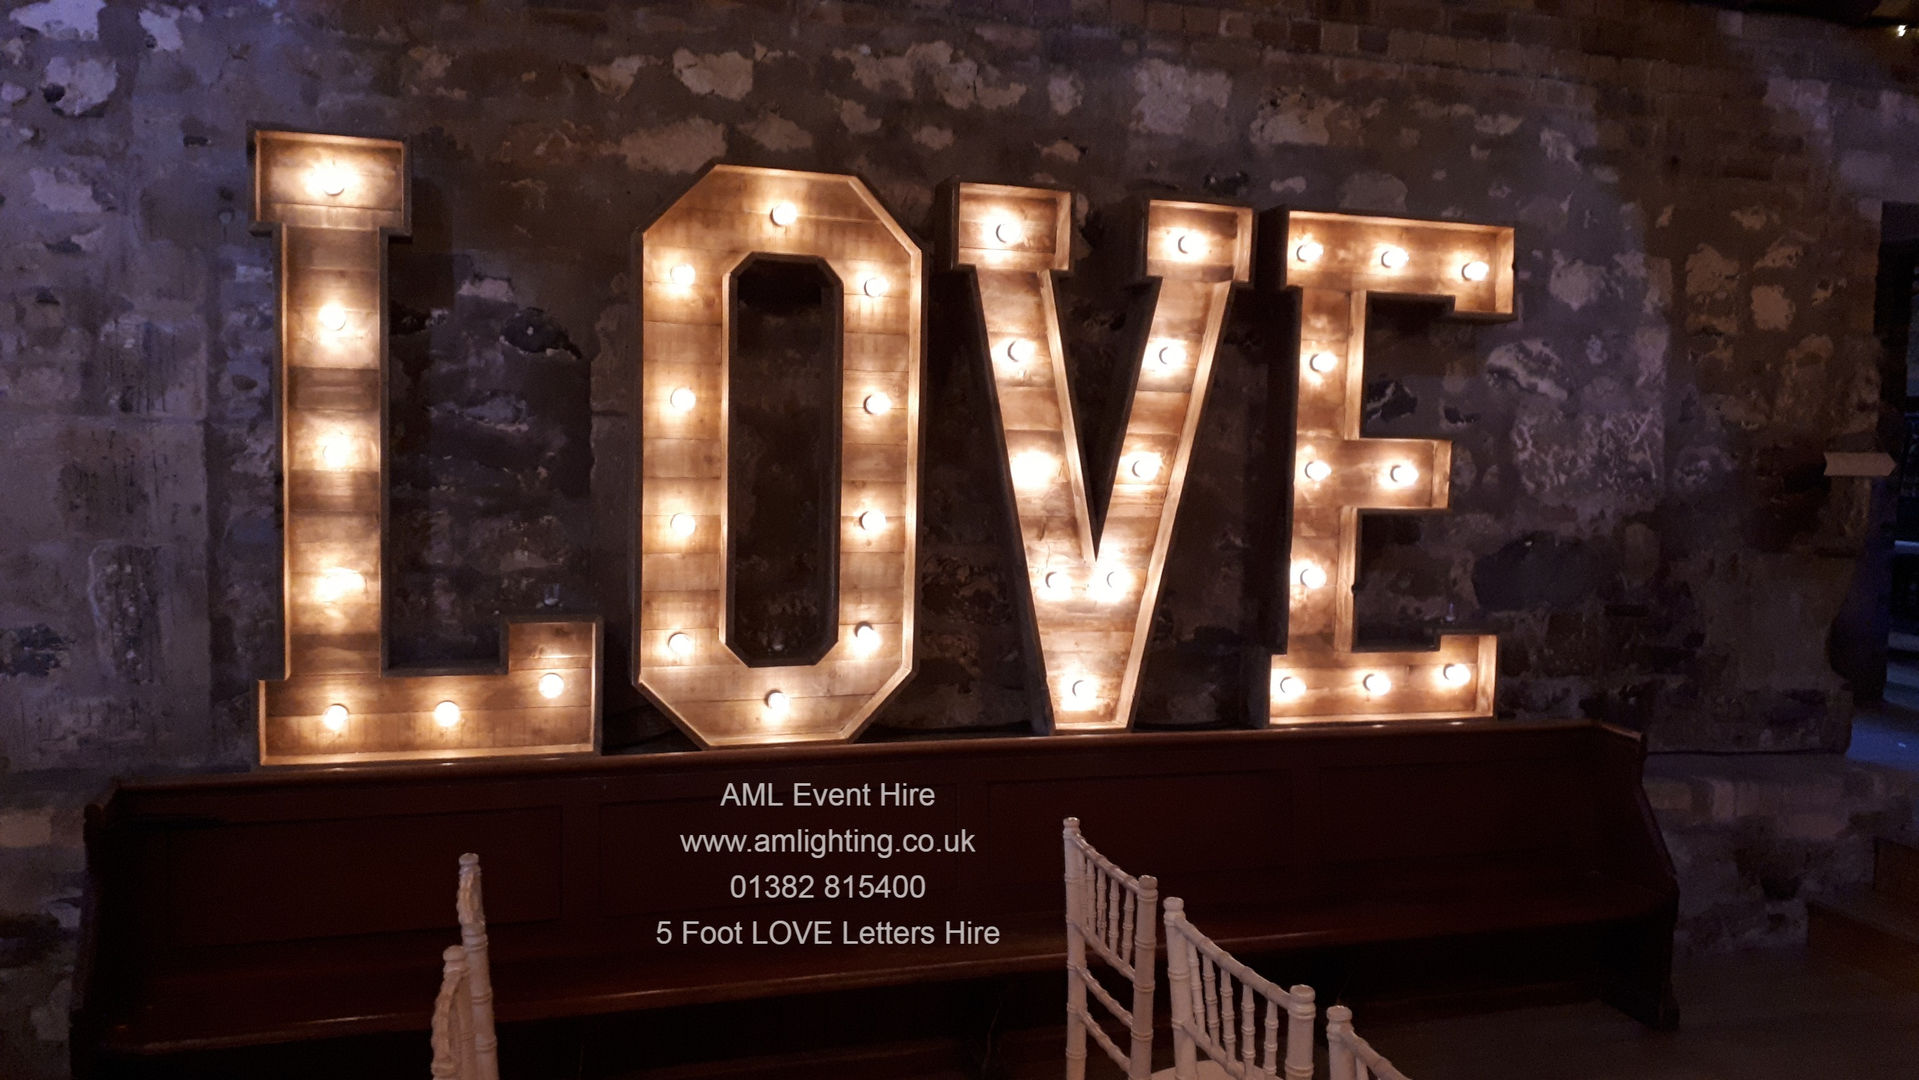 5 Foot Love Letter Hire